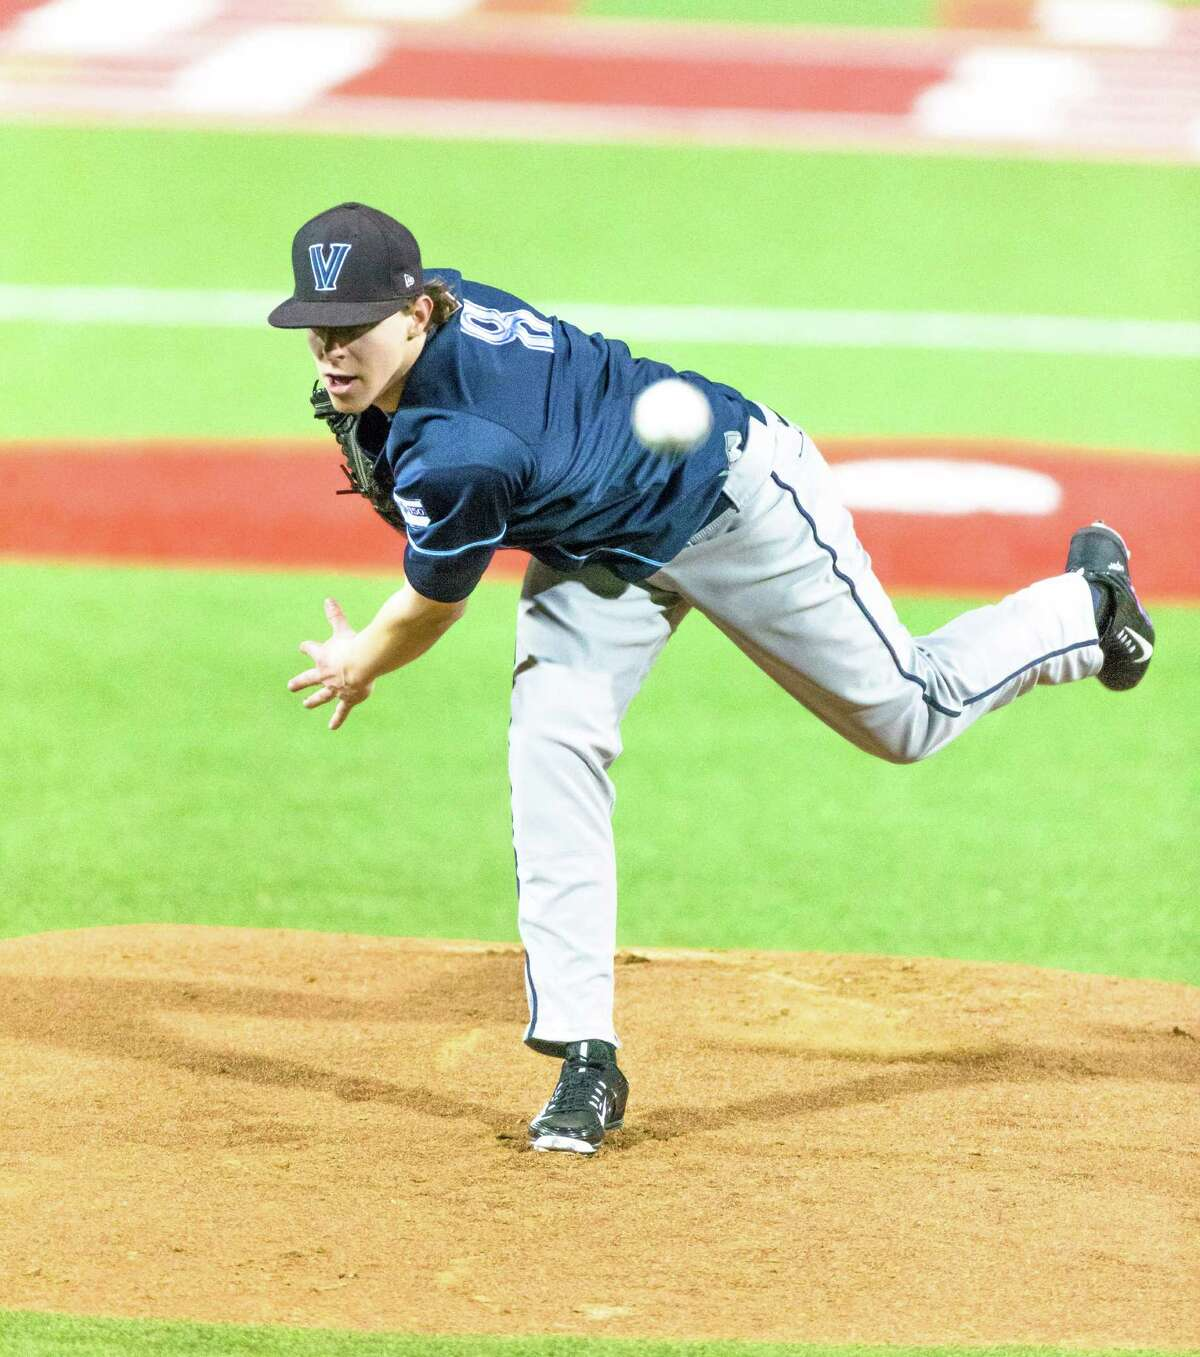 Villanova pitcher Hunter Schryver (8) on the mound in action during the first inning of play betweenVillanova at University of Houston baseball game at the Darryl & Lori Schroeder Park, Friday, Feb. 19, 2016, in Houston. ( Juan DeLeon / For the Houston Chronicle )